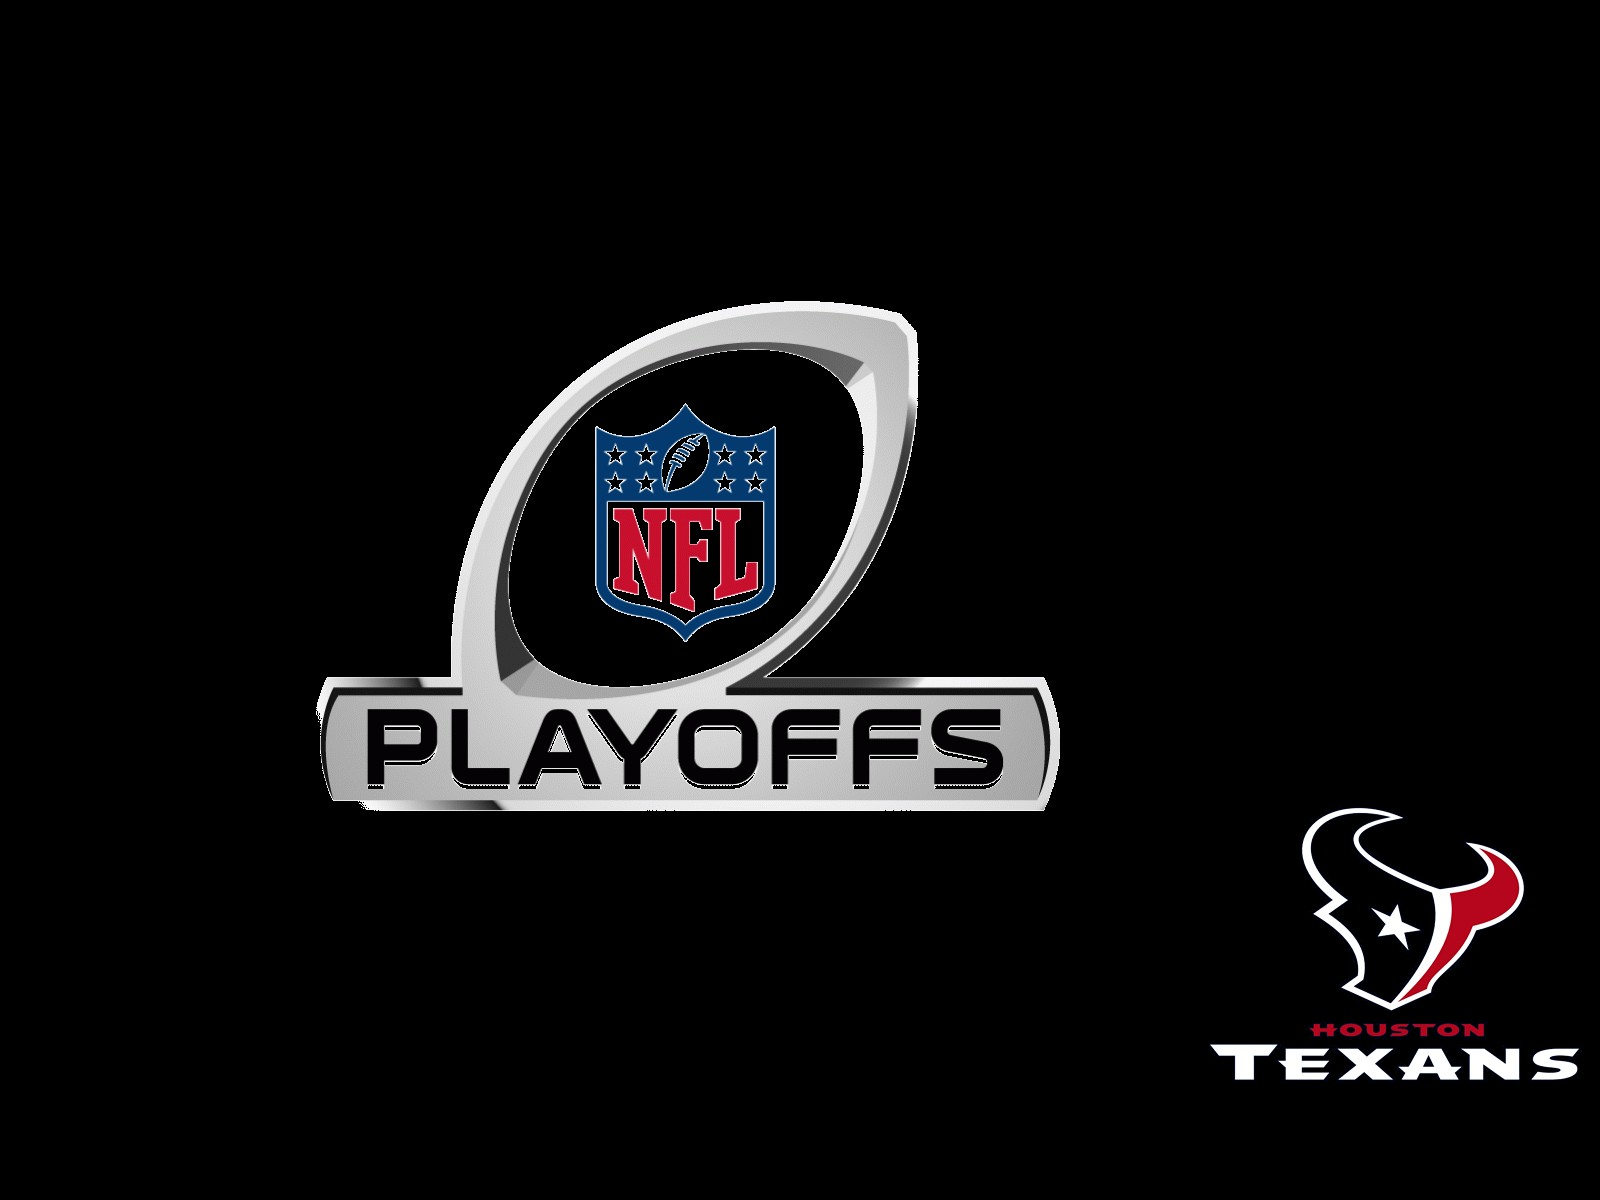 Houston Texans Nfl 1600x1200 Desktop Images 1600x1200